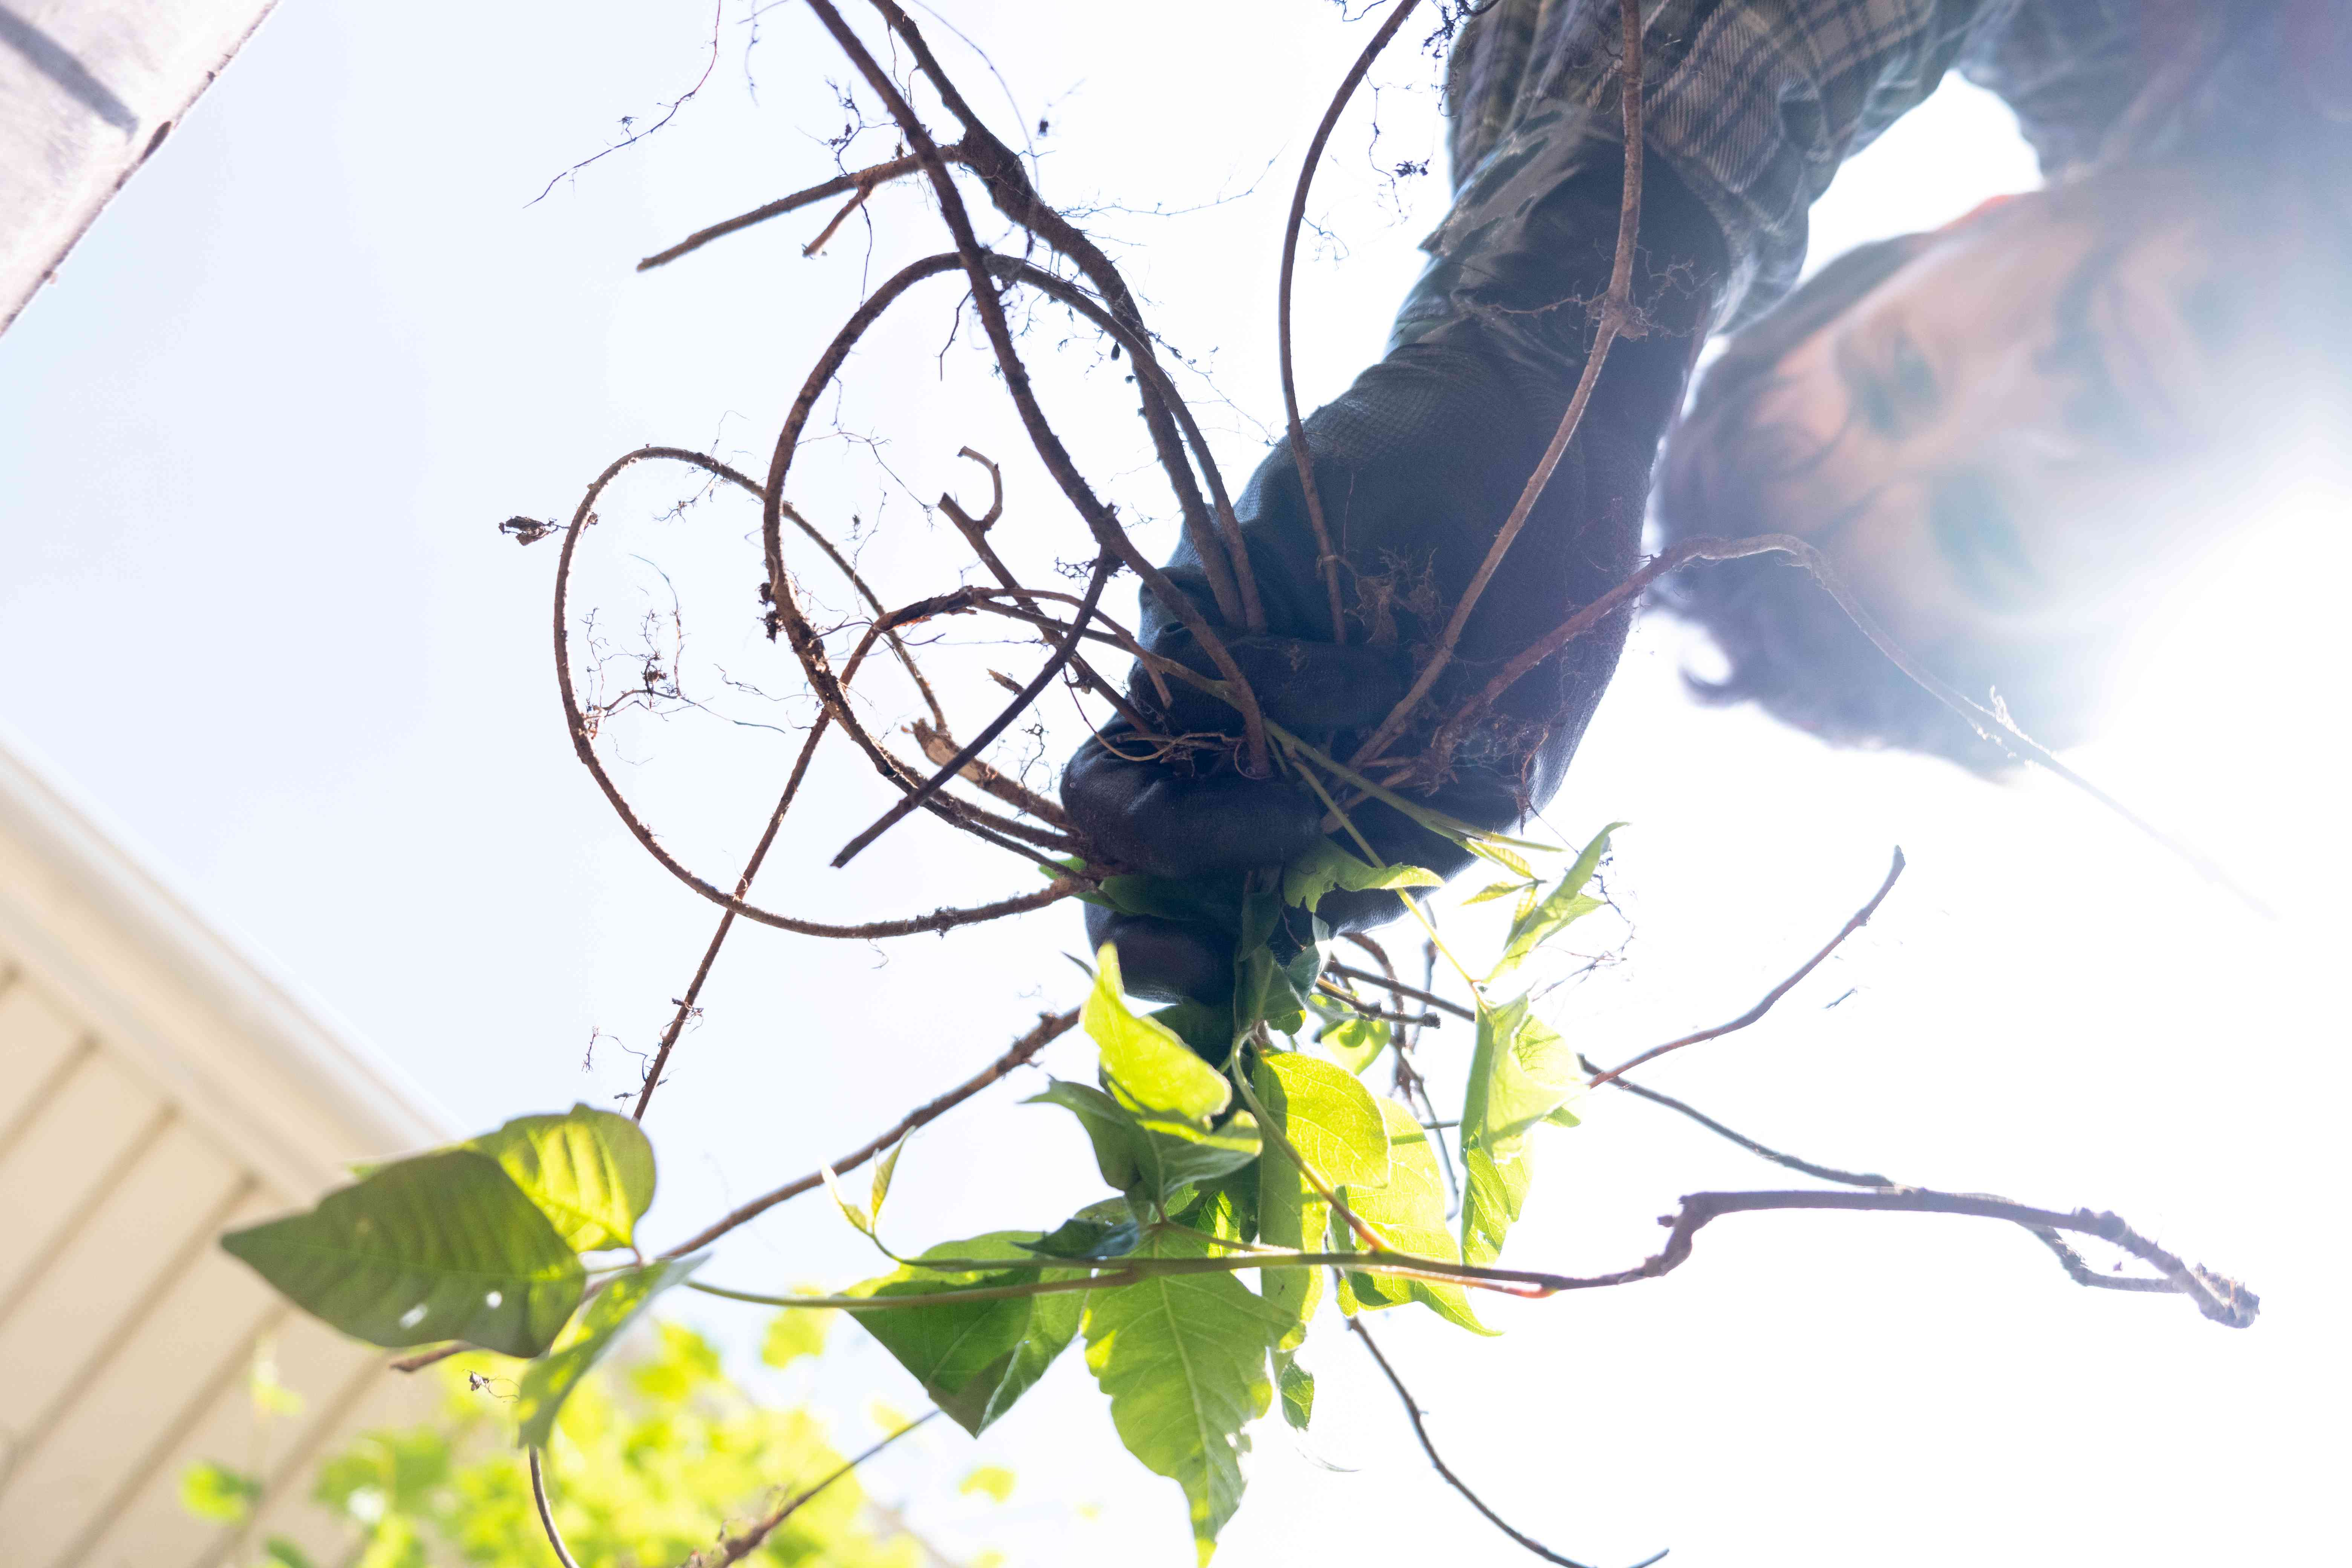 man shows off roots from just-pulled-out poison ivy plant with sun glare